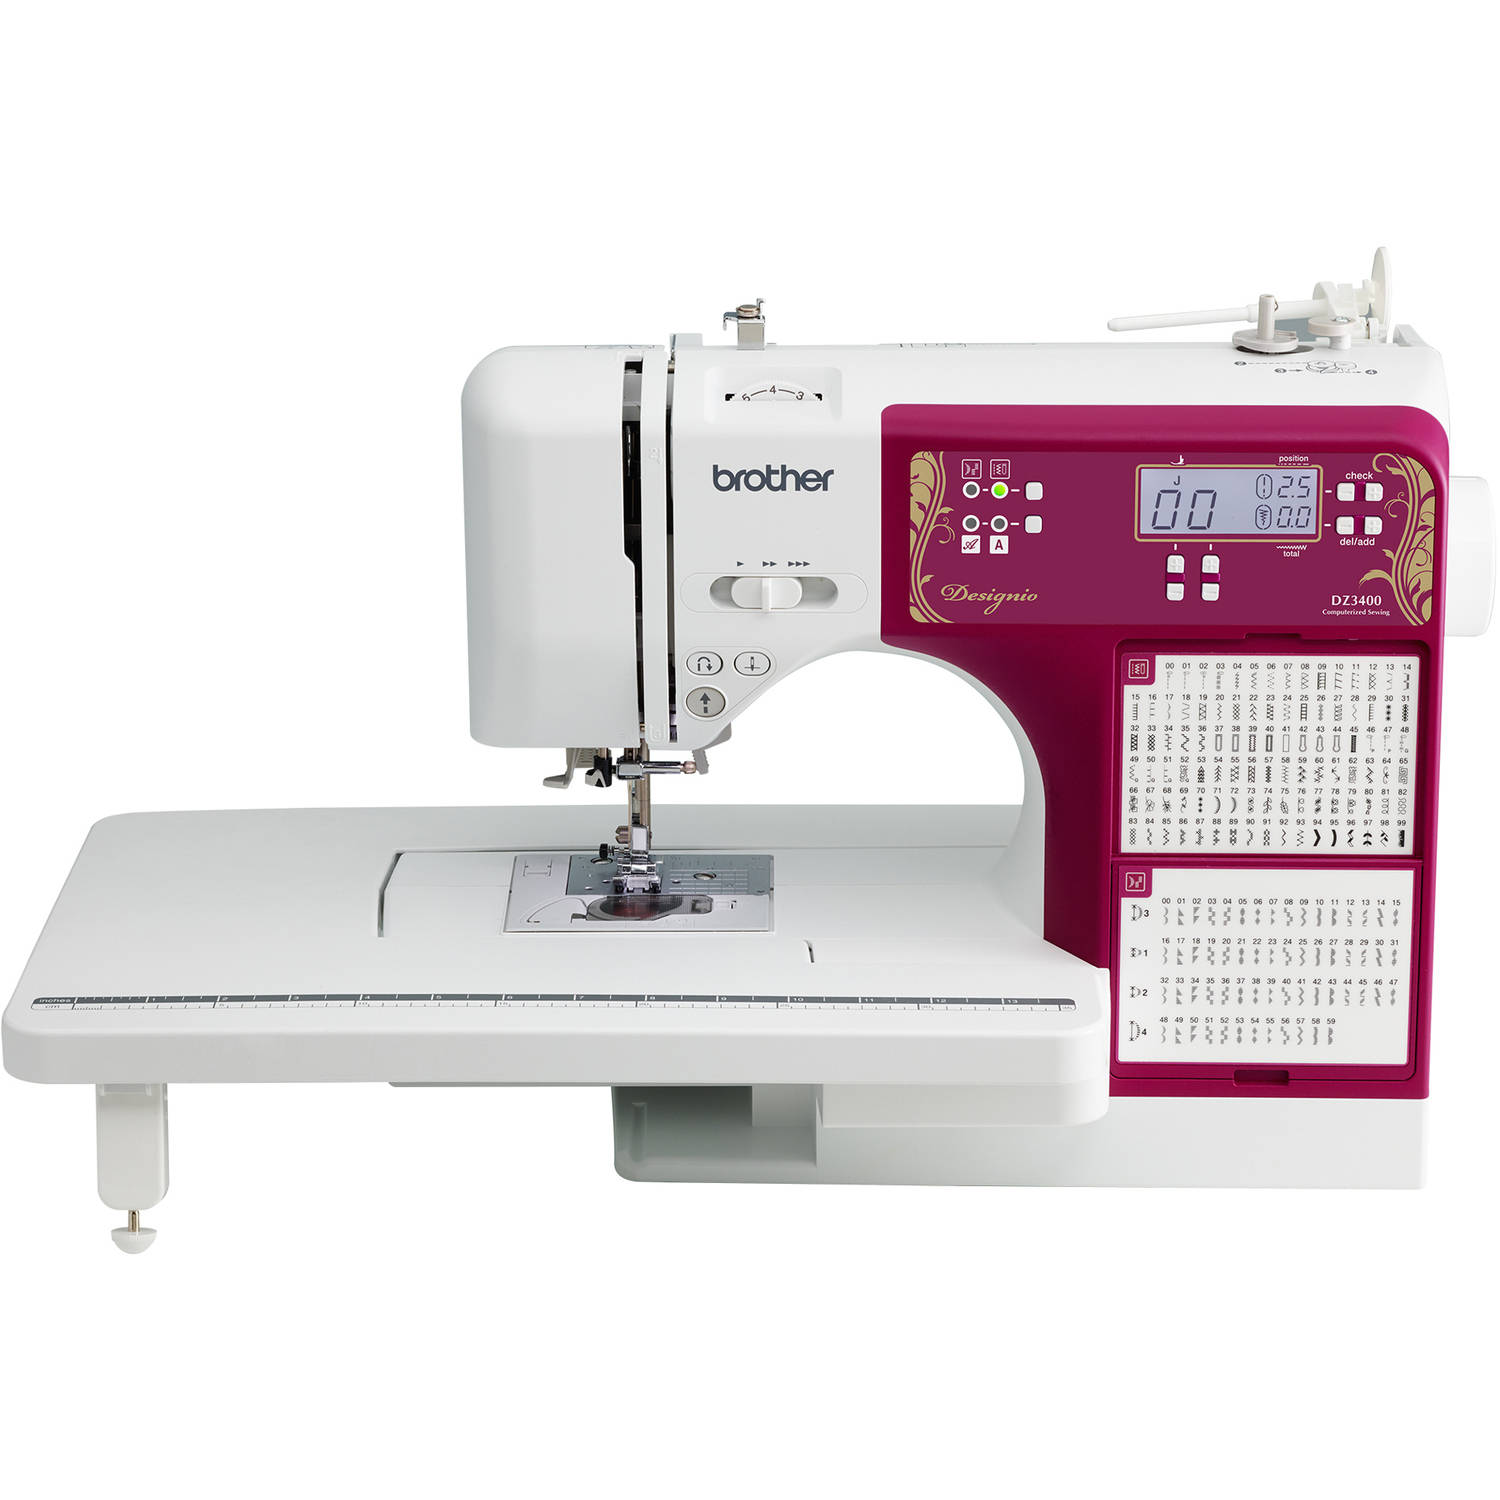 Designio Series by Brother DZ3400 270-Stitch Computerized Sewing & Quilting Machine